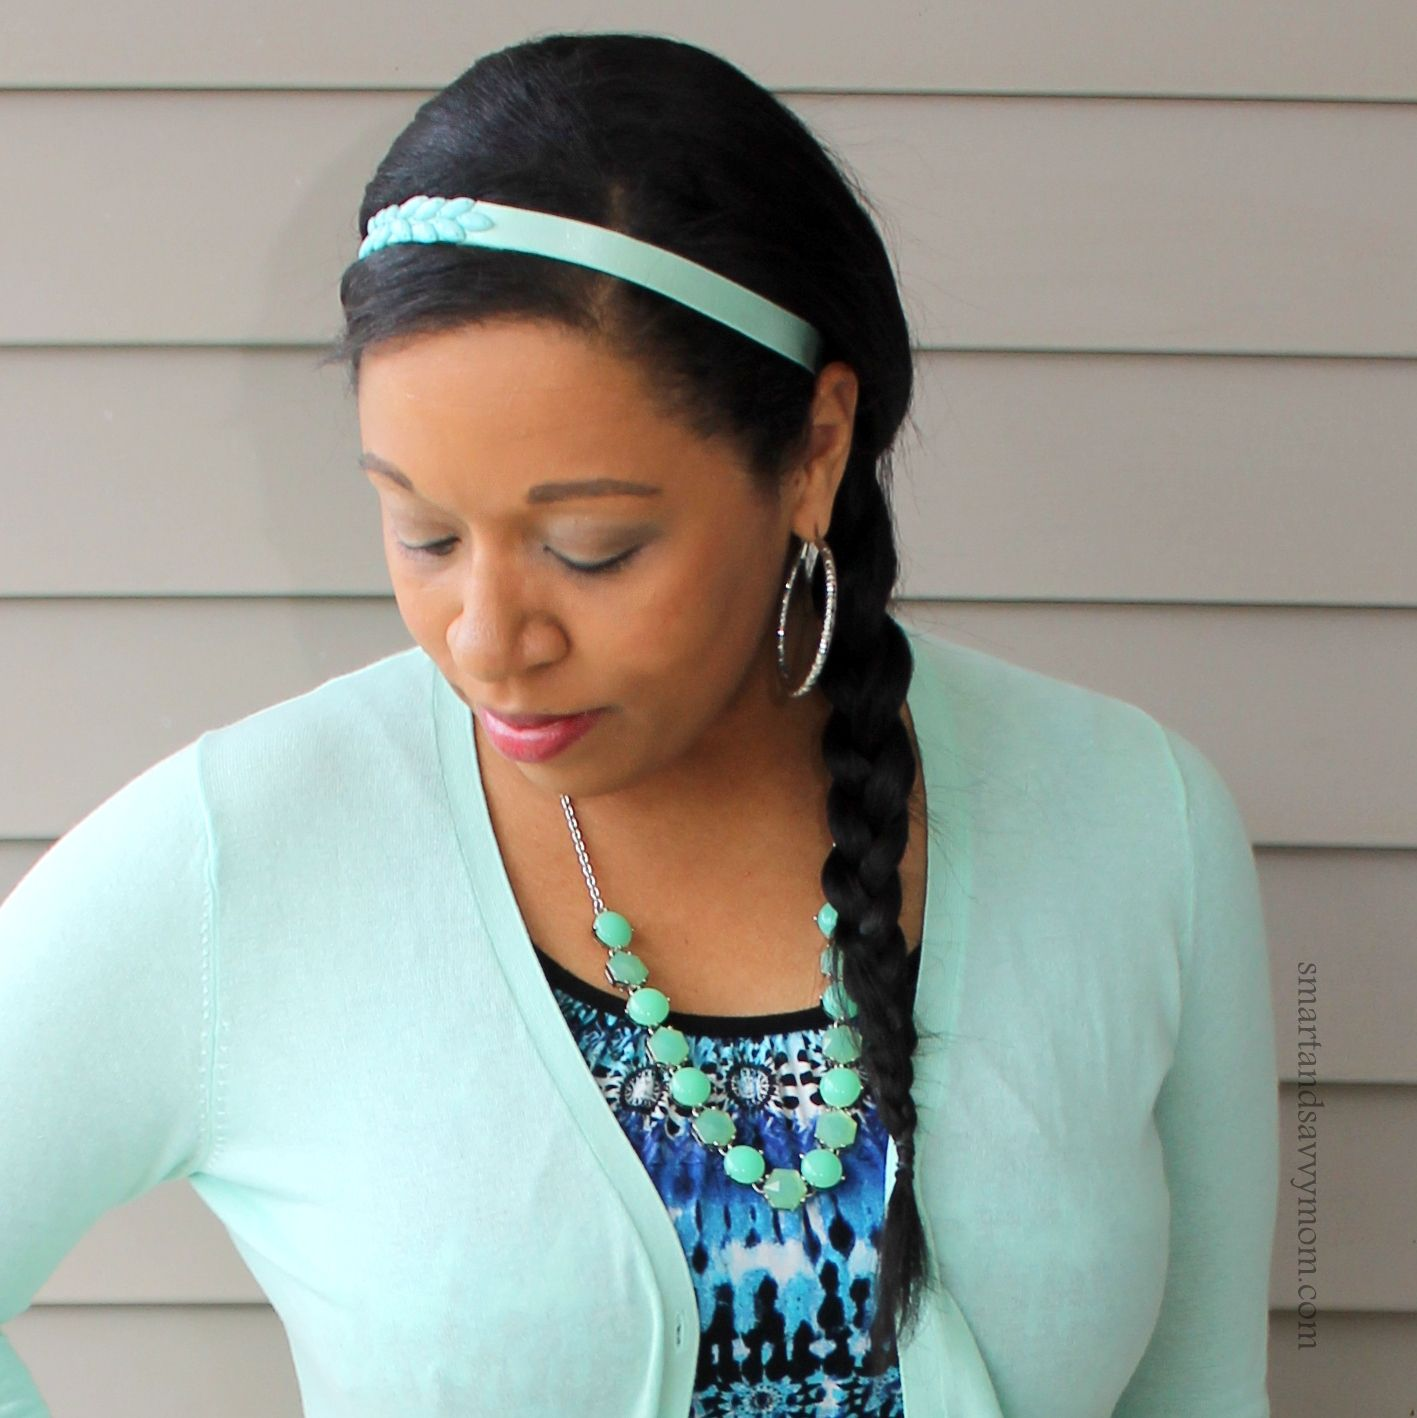 mint headband, mint necklace, mint cardigan with blue and black ...